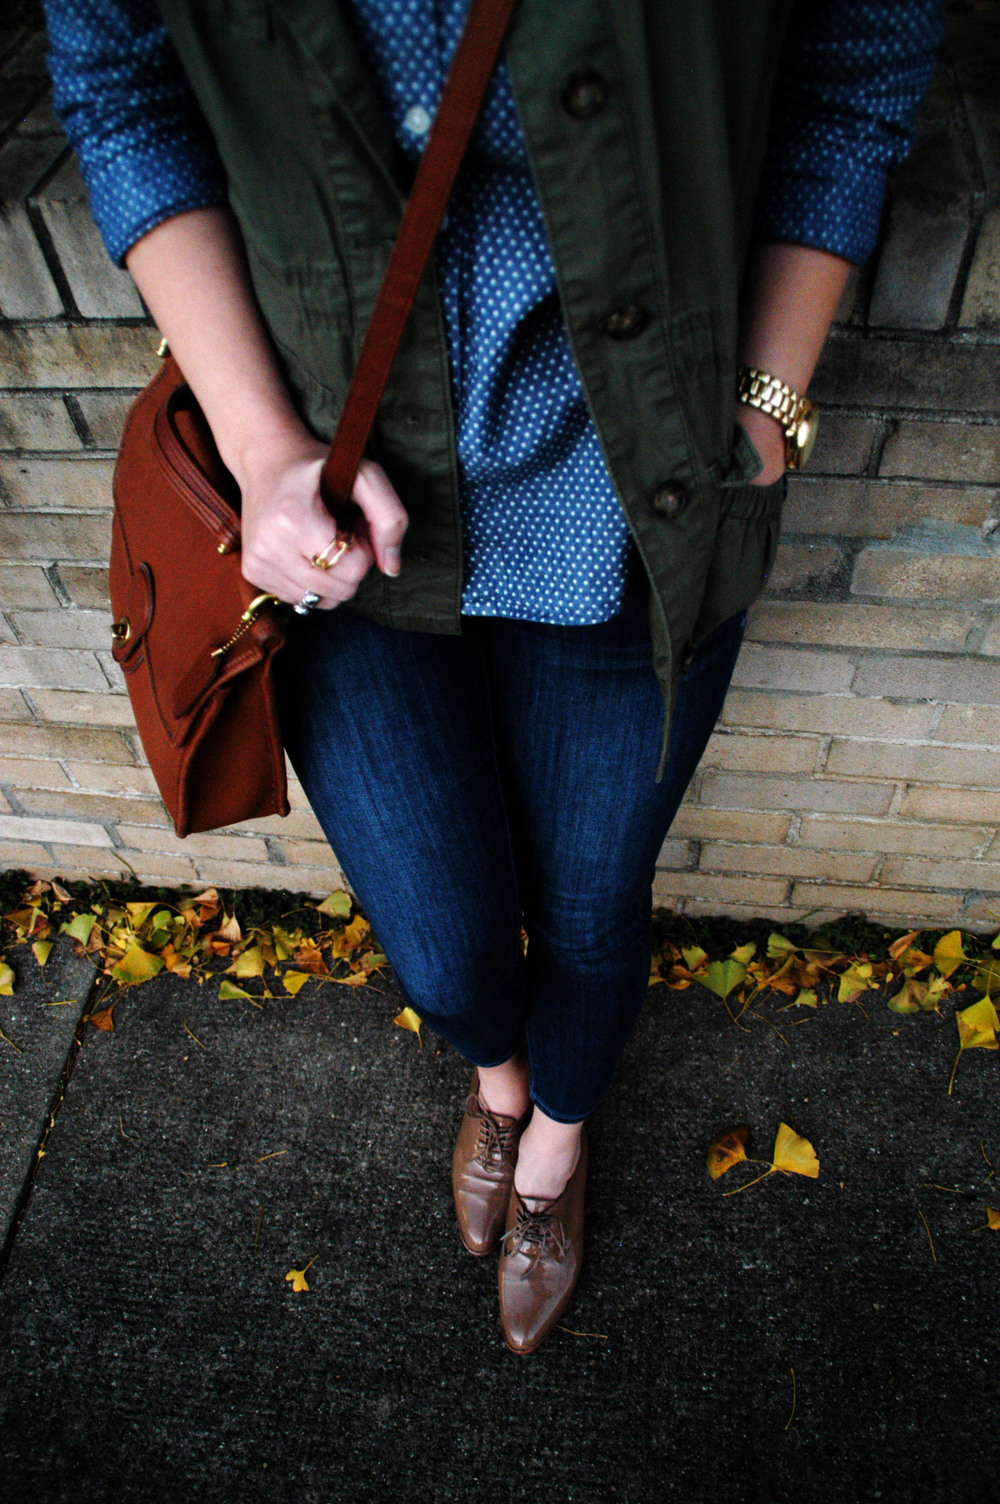 Jeans: Old Navy - Rockstar Skinnies | Vest: Old Navy | Button-up: Old Navy (Do we see a trend here?) Oxfords: Madewell (also like  these ) | Bag:  Coach  | Necklace: Charming Charlie | Rings: H&M